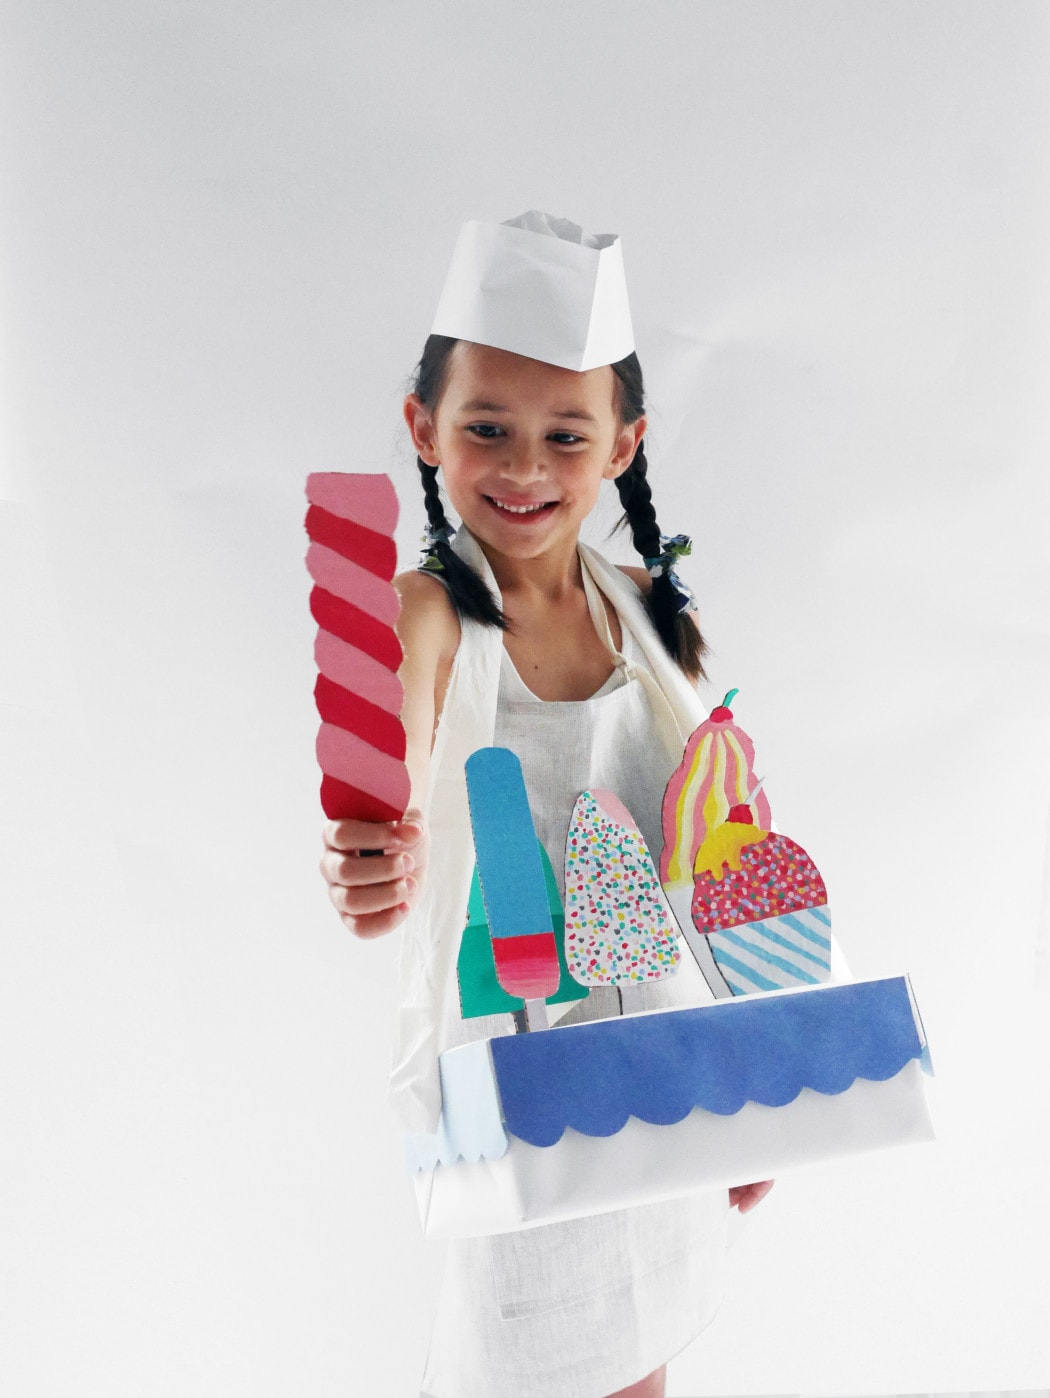 Ice cream vendor DIY Halloween costume for boys and girls